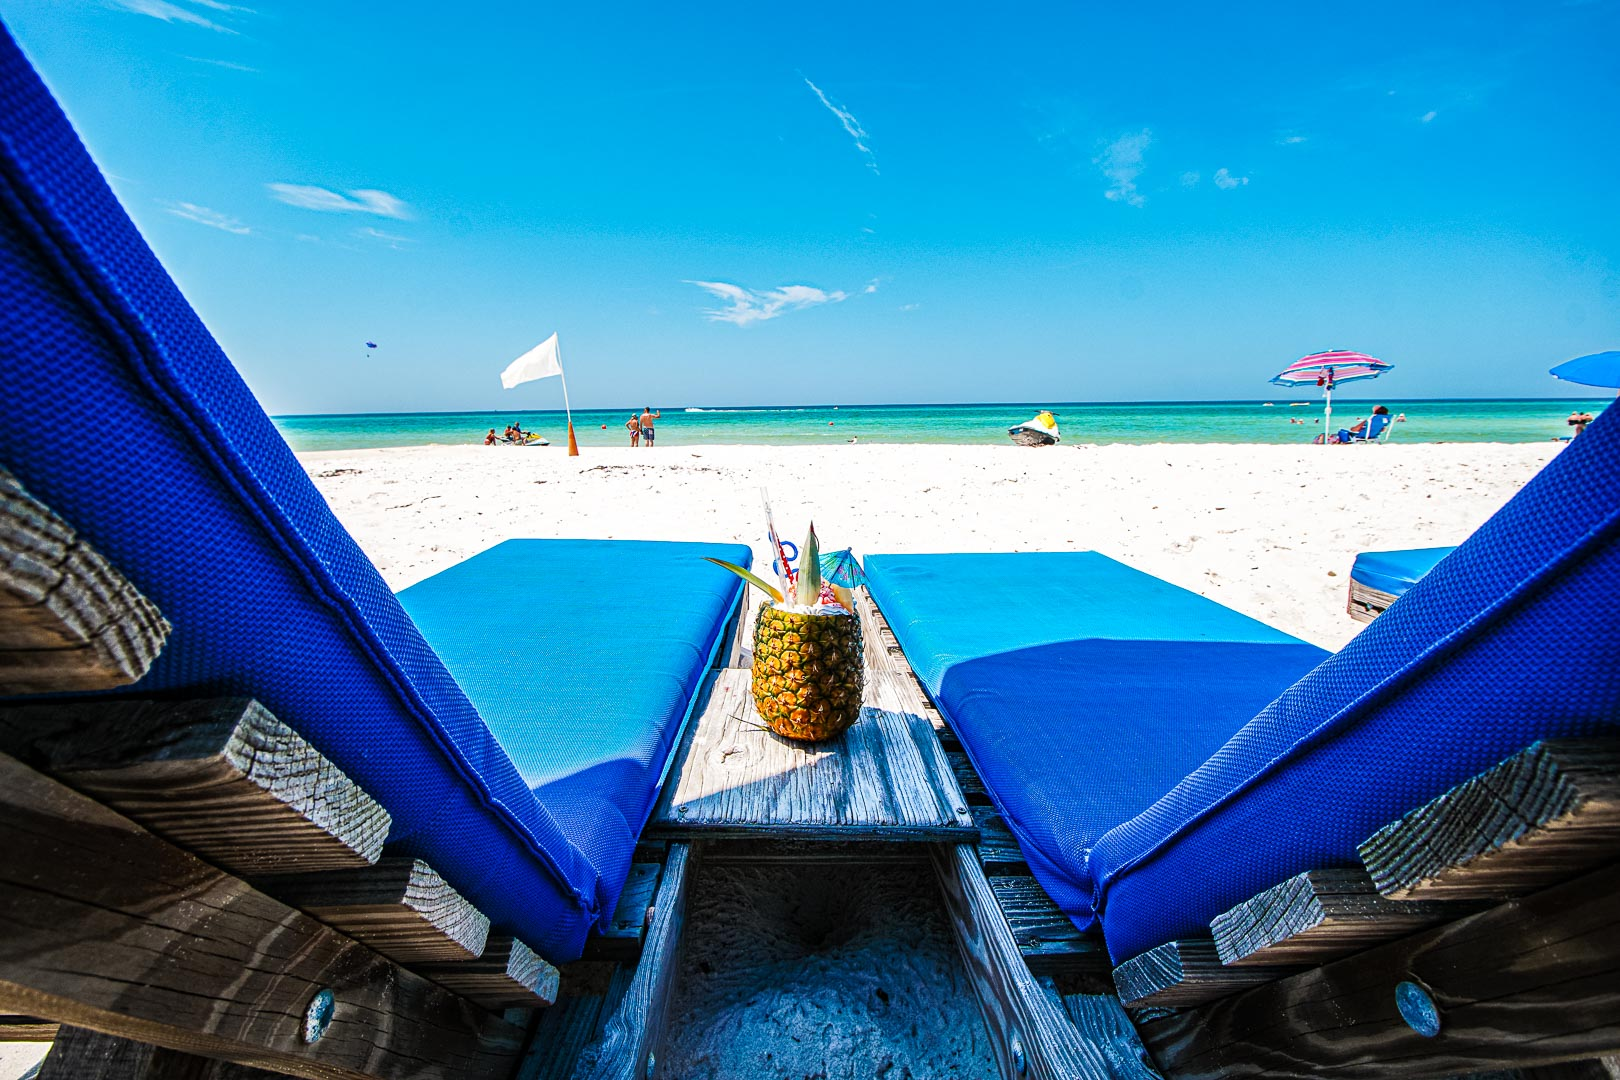 A relaxing view of the beach and a pina colada at VRI's Landmark Holiday Beach Resort in Panama City, Florida.